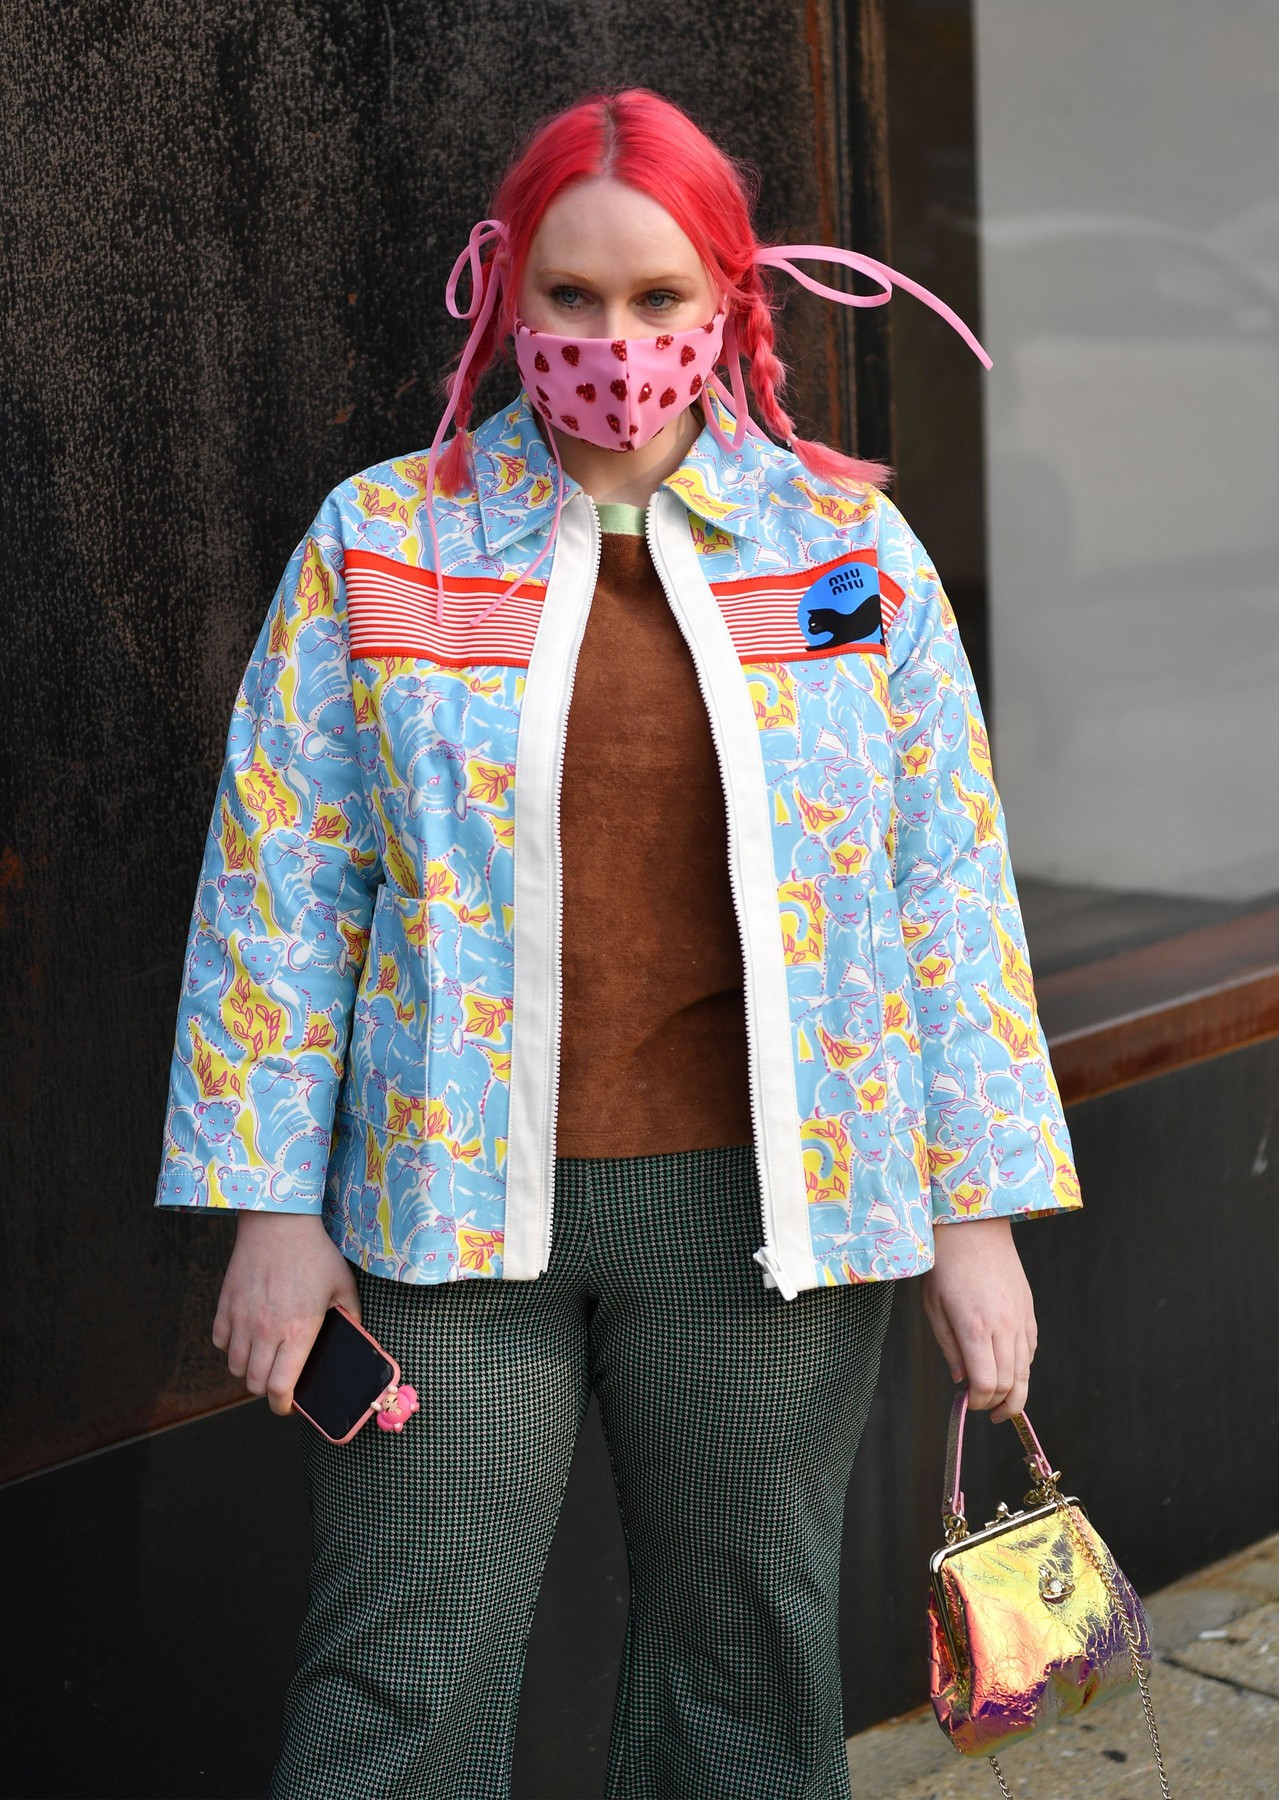 An attendee at NYFW 2020 street fashion outside Rebecca Minkoff Street Style, Spring Summer 2021, New York Fashion Week, USA - 15 Sep 2020,Image: 558179020, License: Rights-managed, Restrictions: , Model Release: no, Credit line: Stephen Lovekin / Shutterstock Editorial / Profimedia